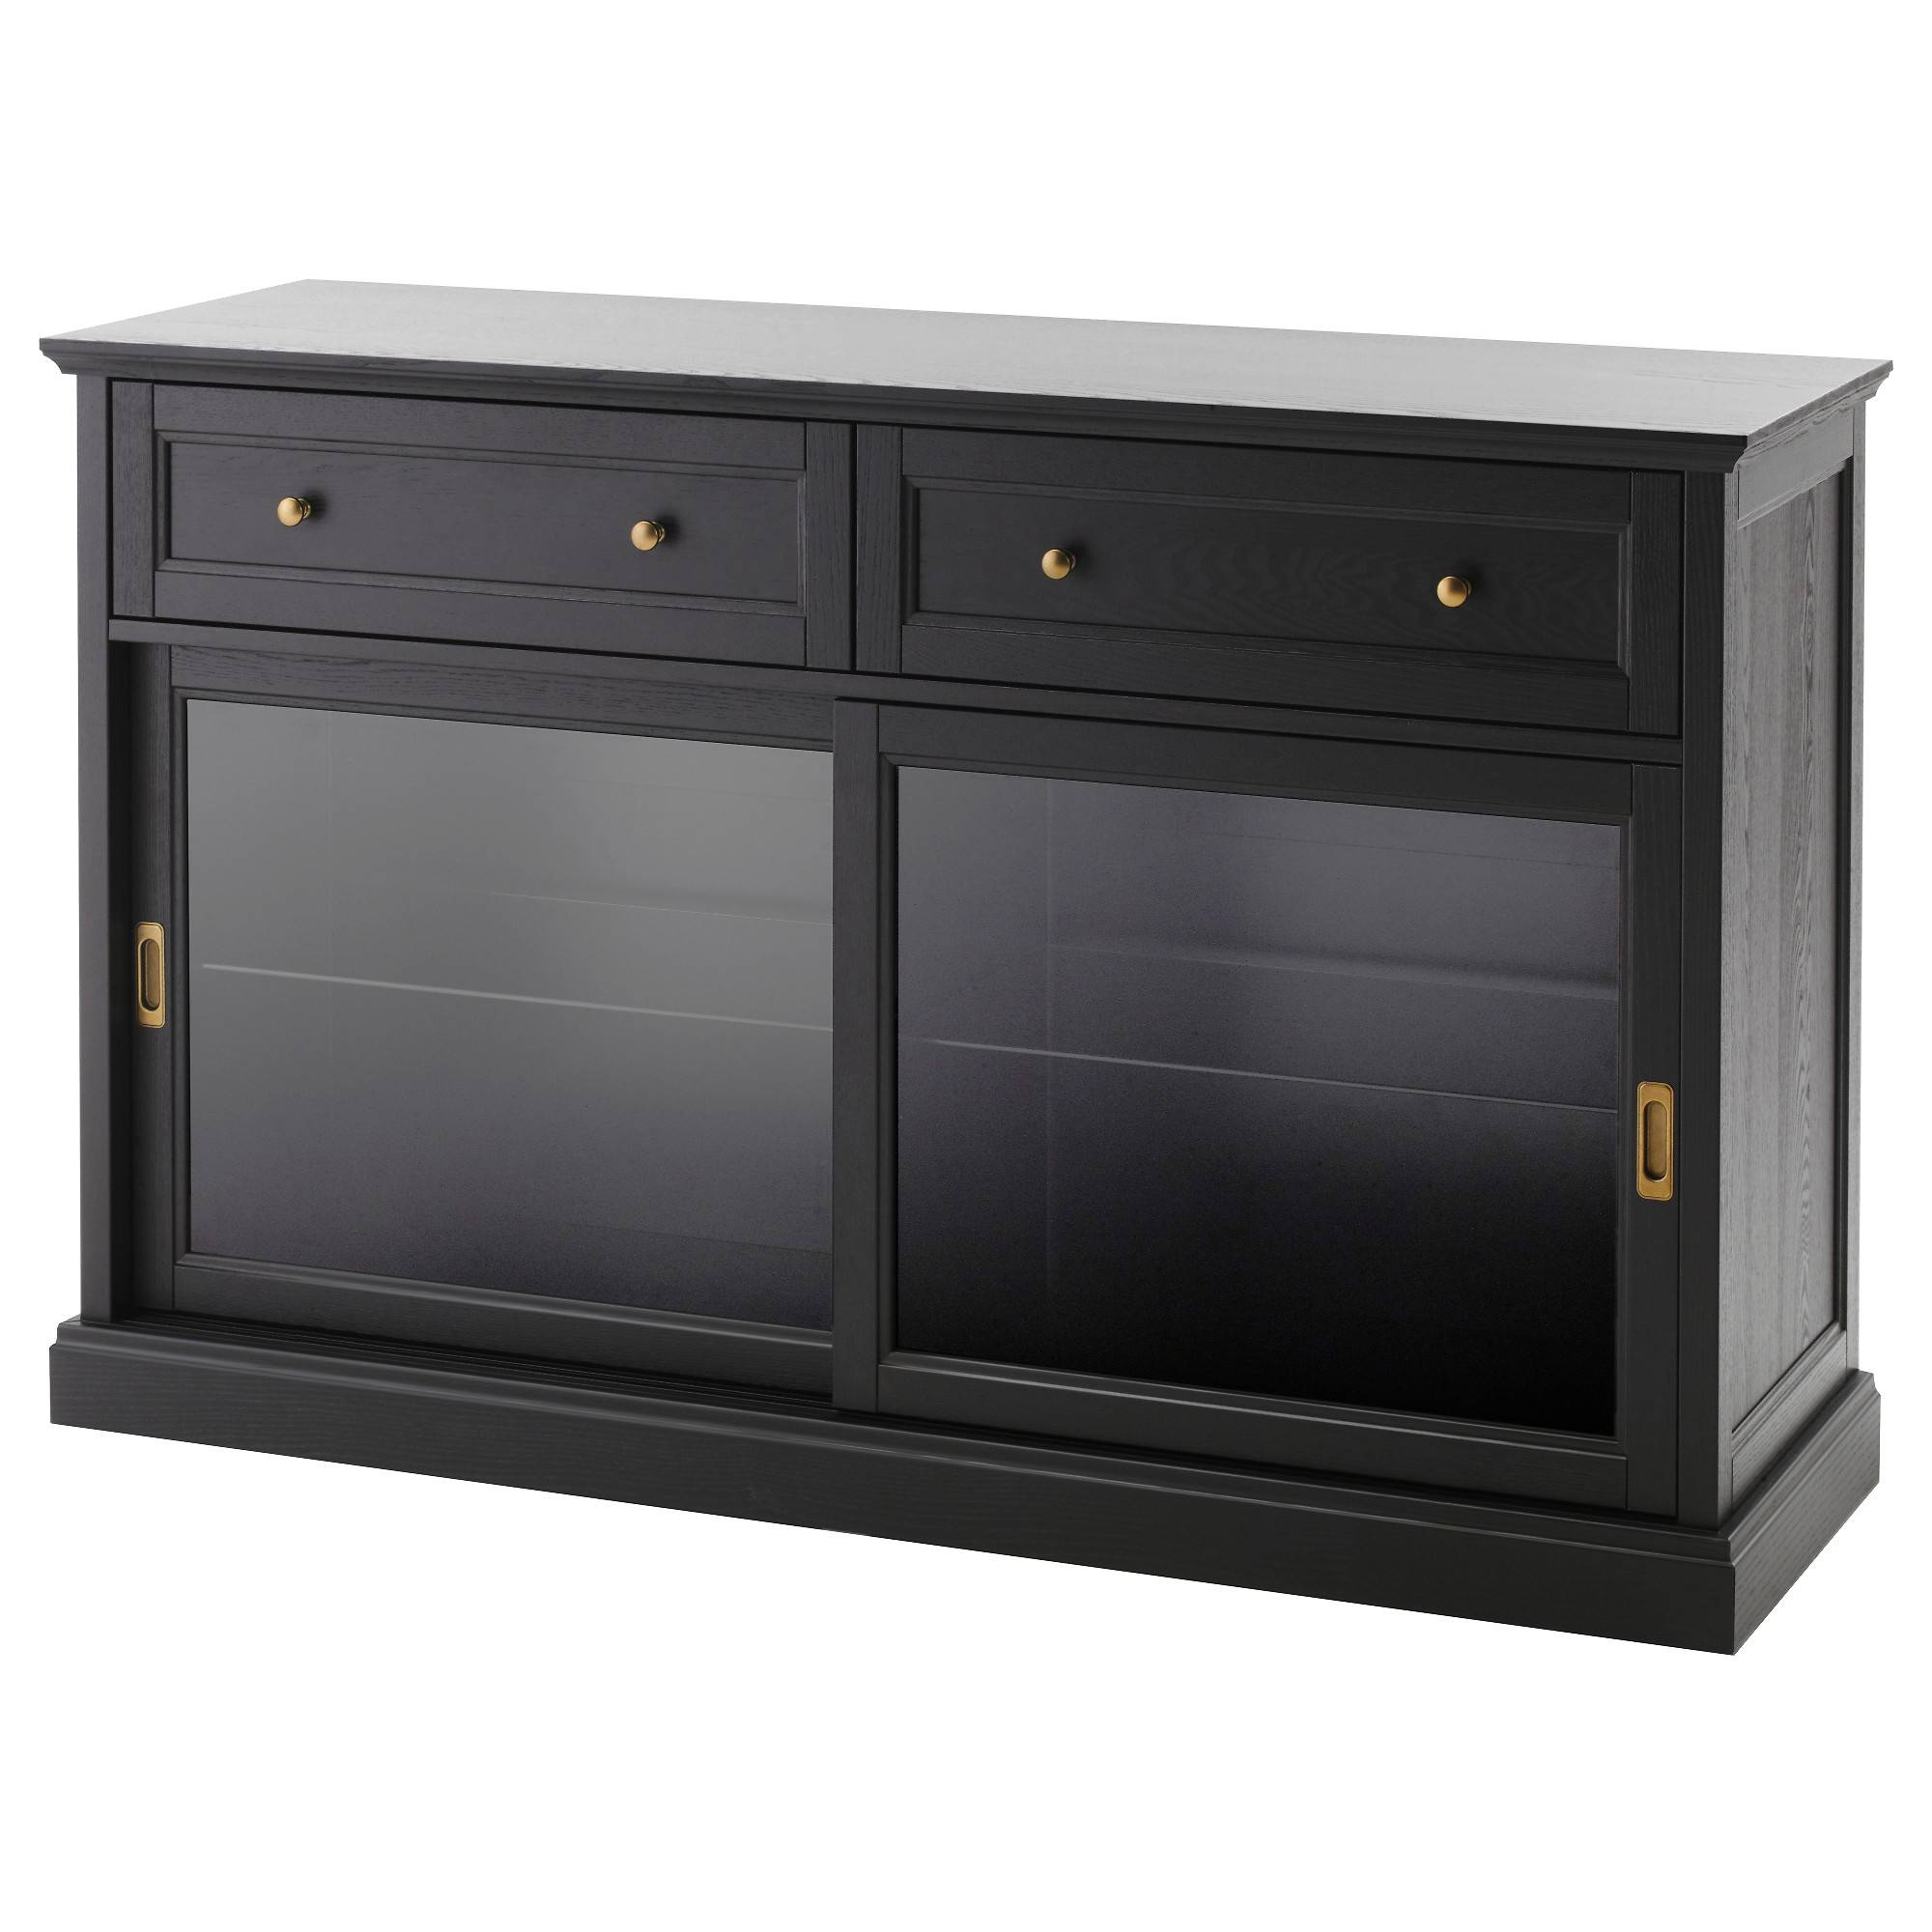 Buffet Tables & Sideboards - Ikea intended for Black Gloss Buffet Sideboards (Image 3 of 30)